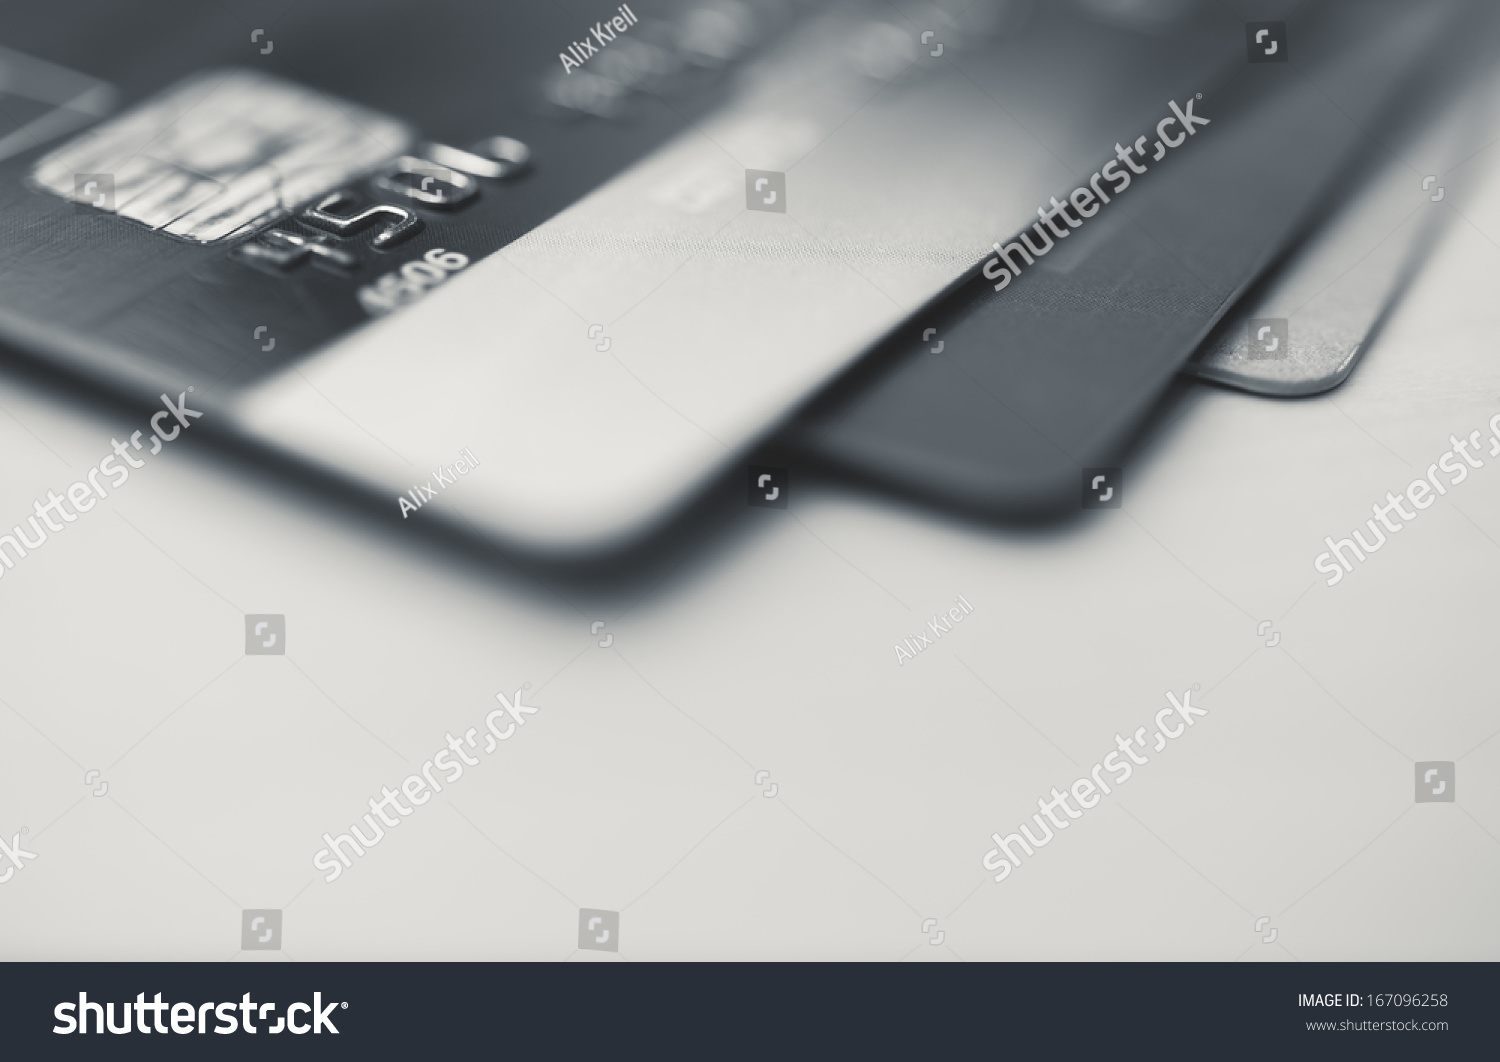 how to close woolworths credit card